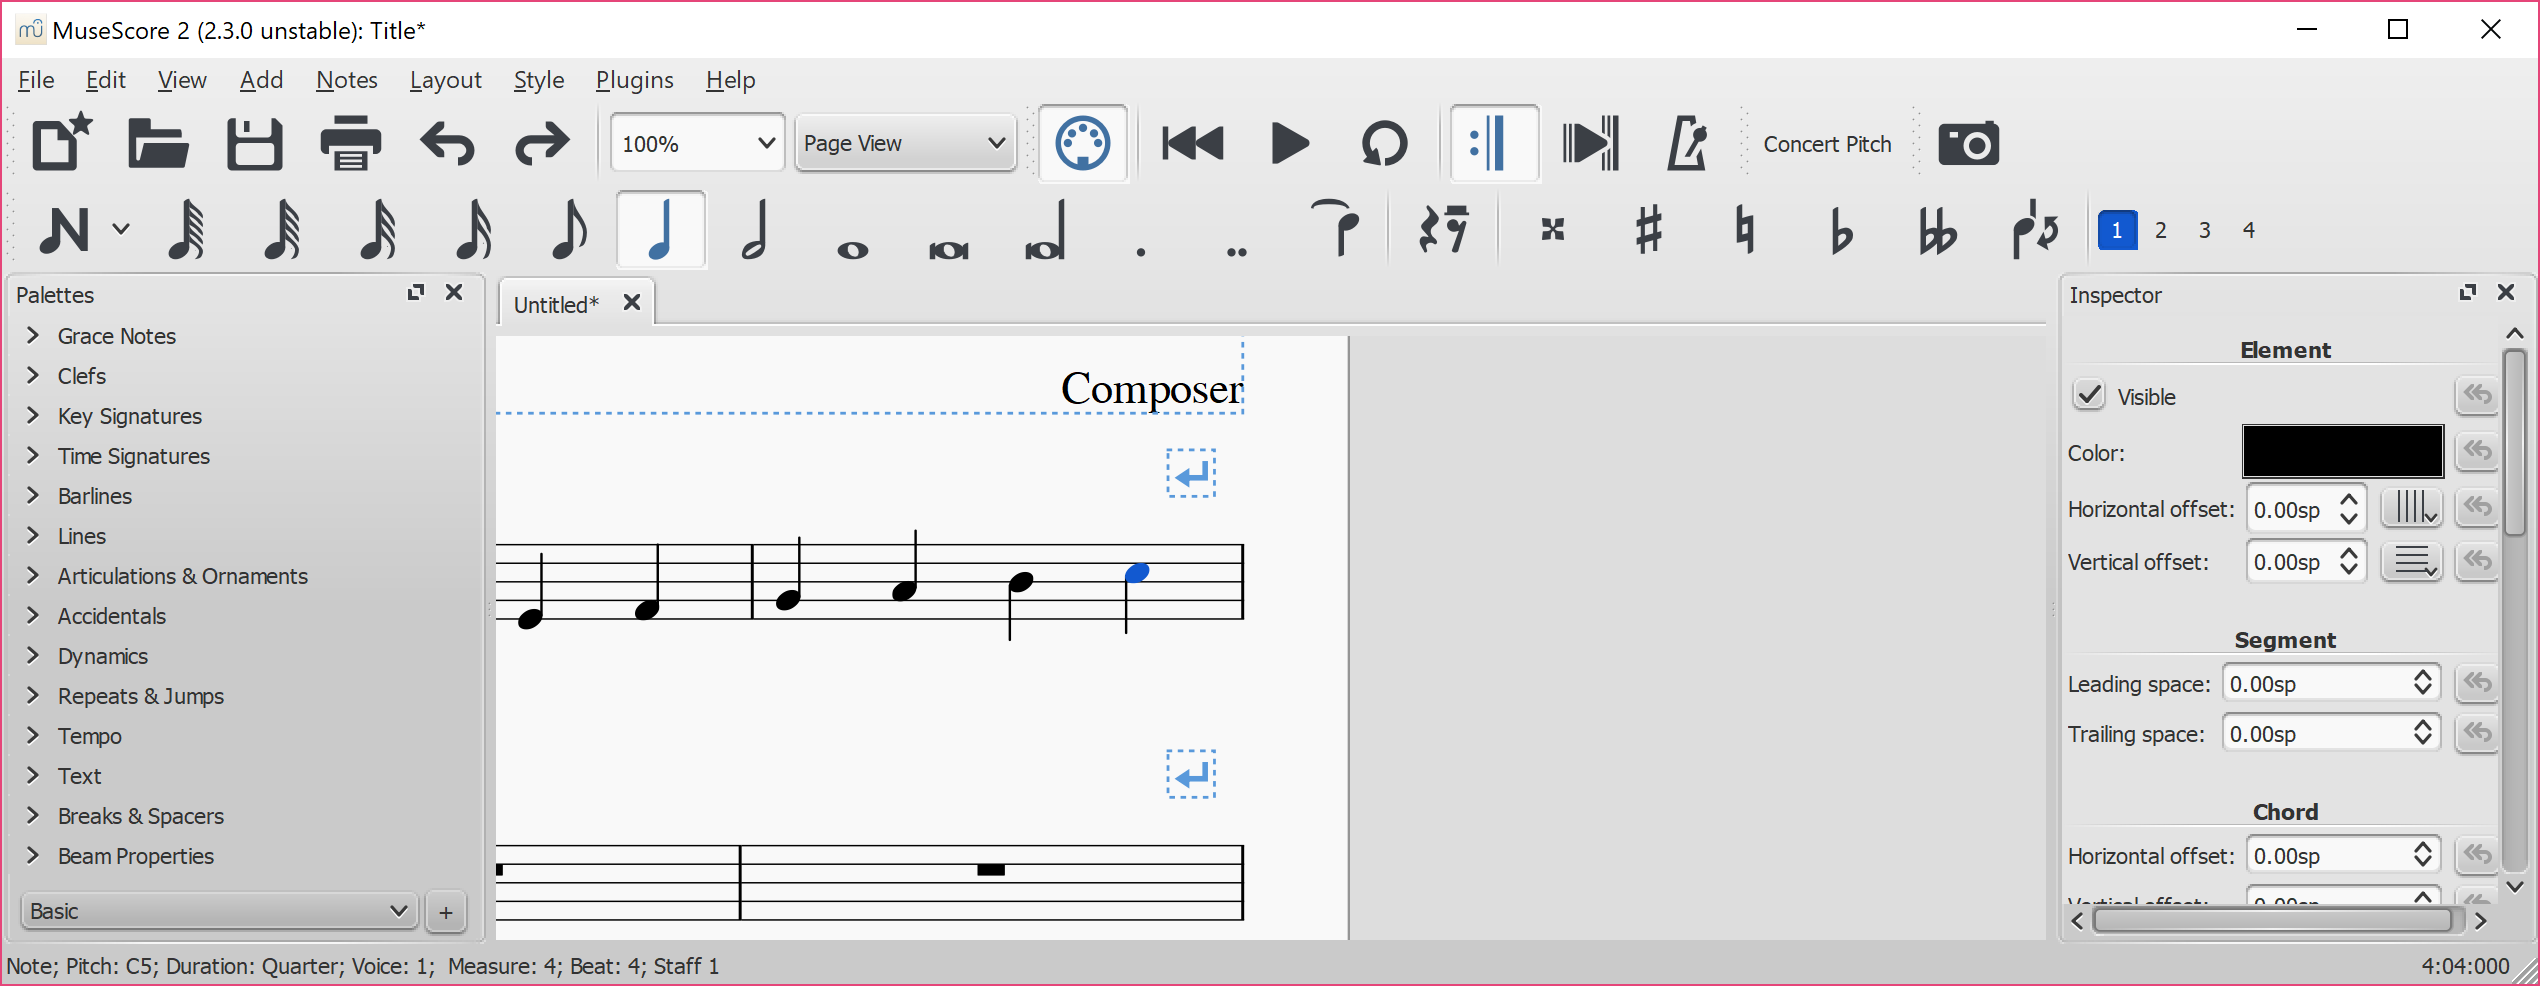 how to change instruments in musescore 2